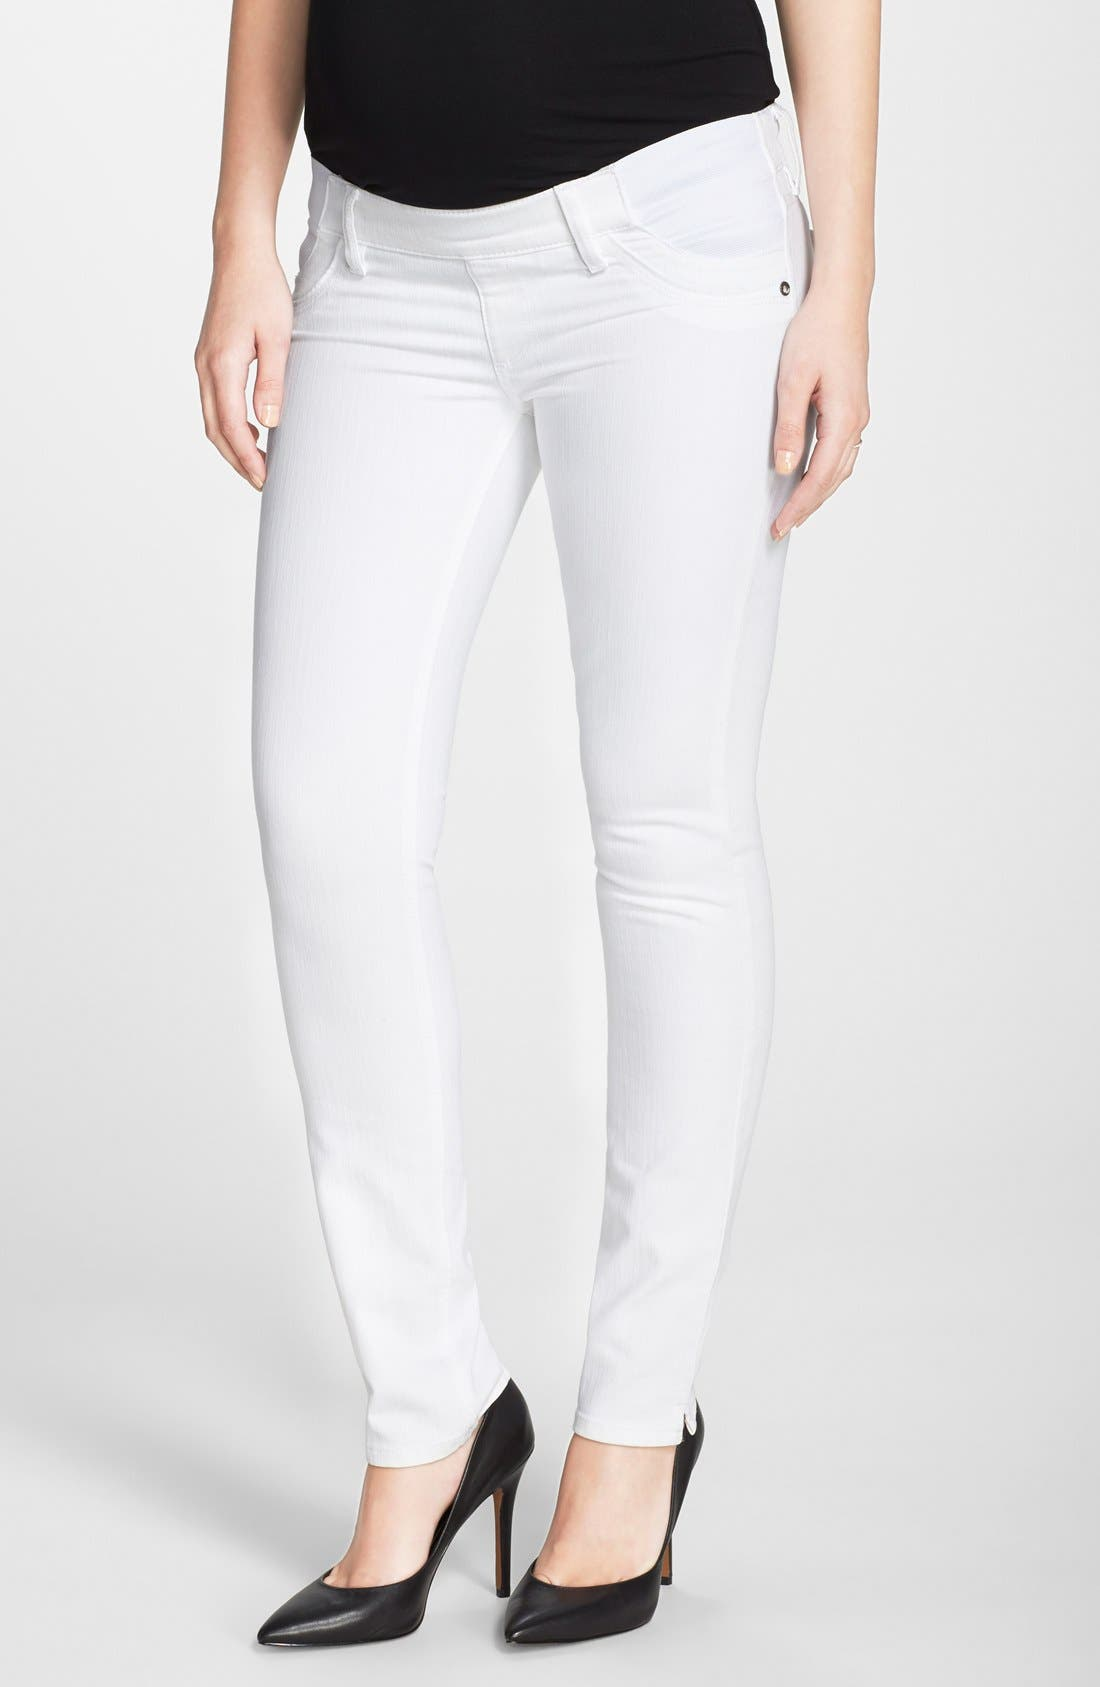 DL1961 'Angel' Ankle Cigarette Maternity Jeans